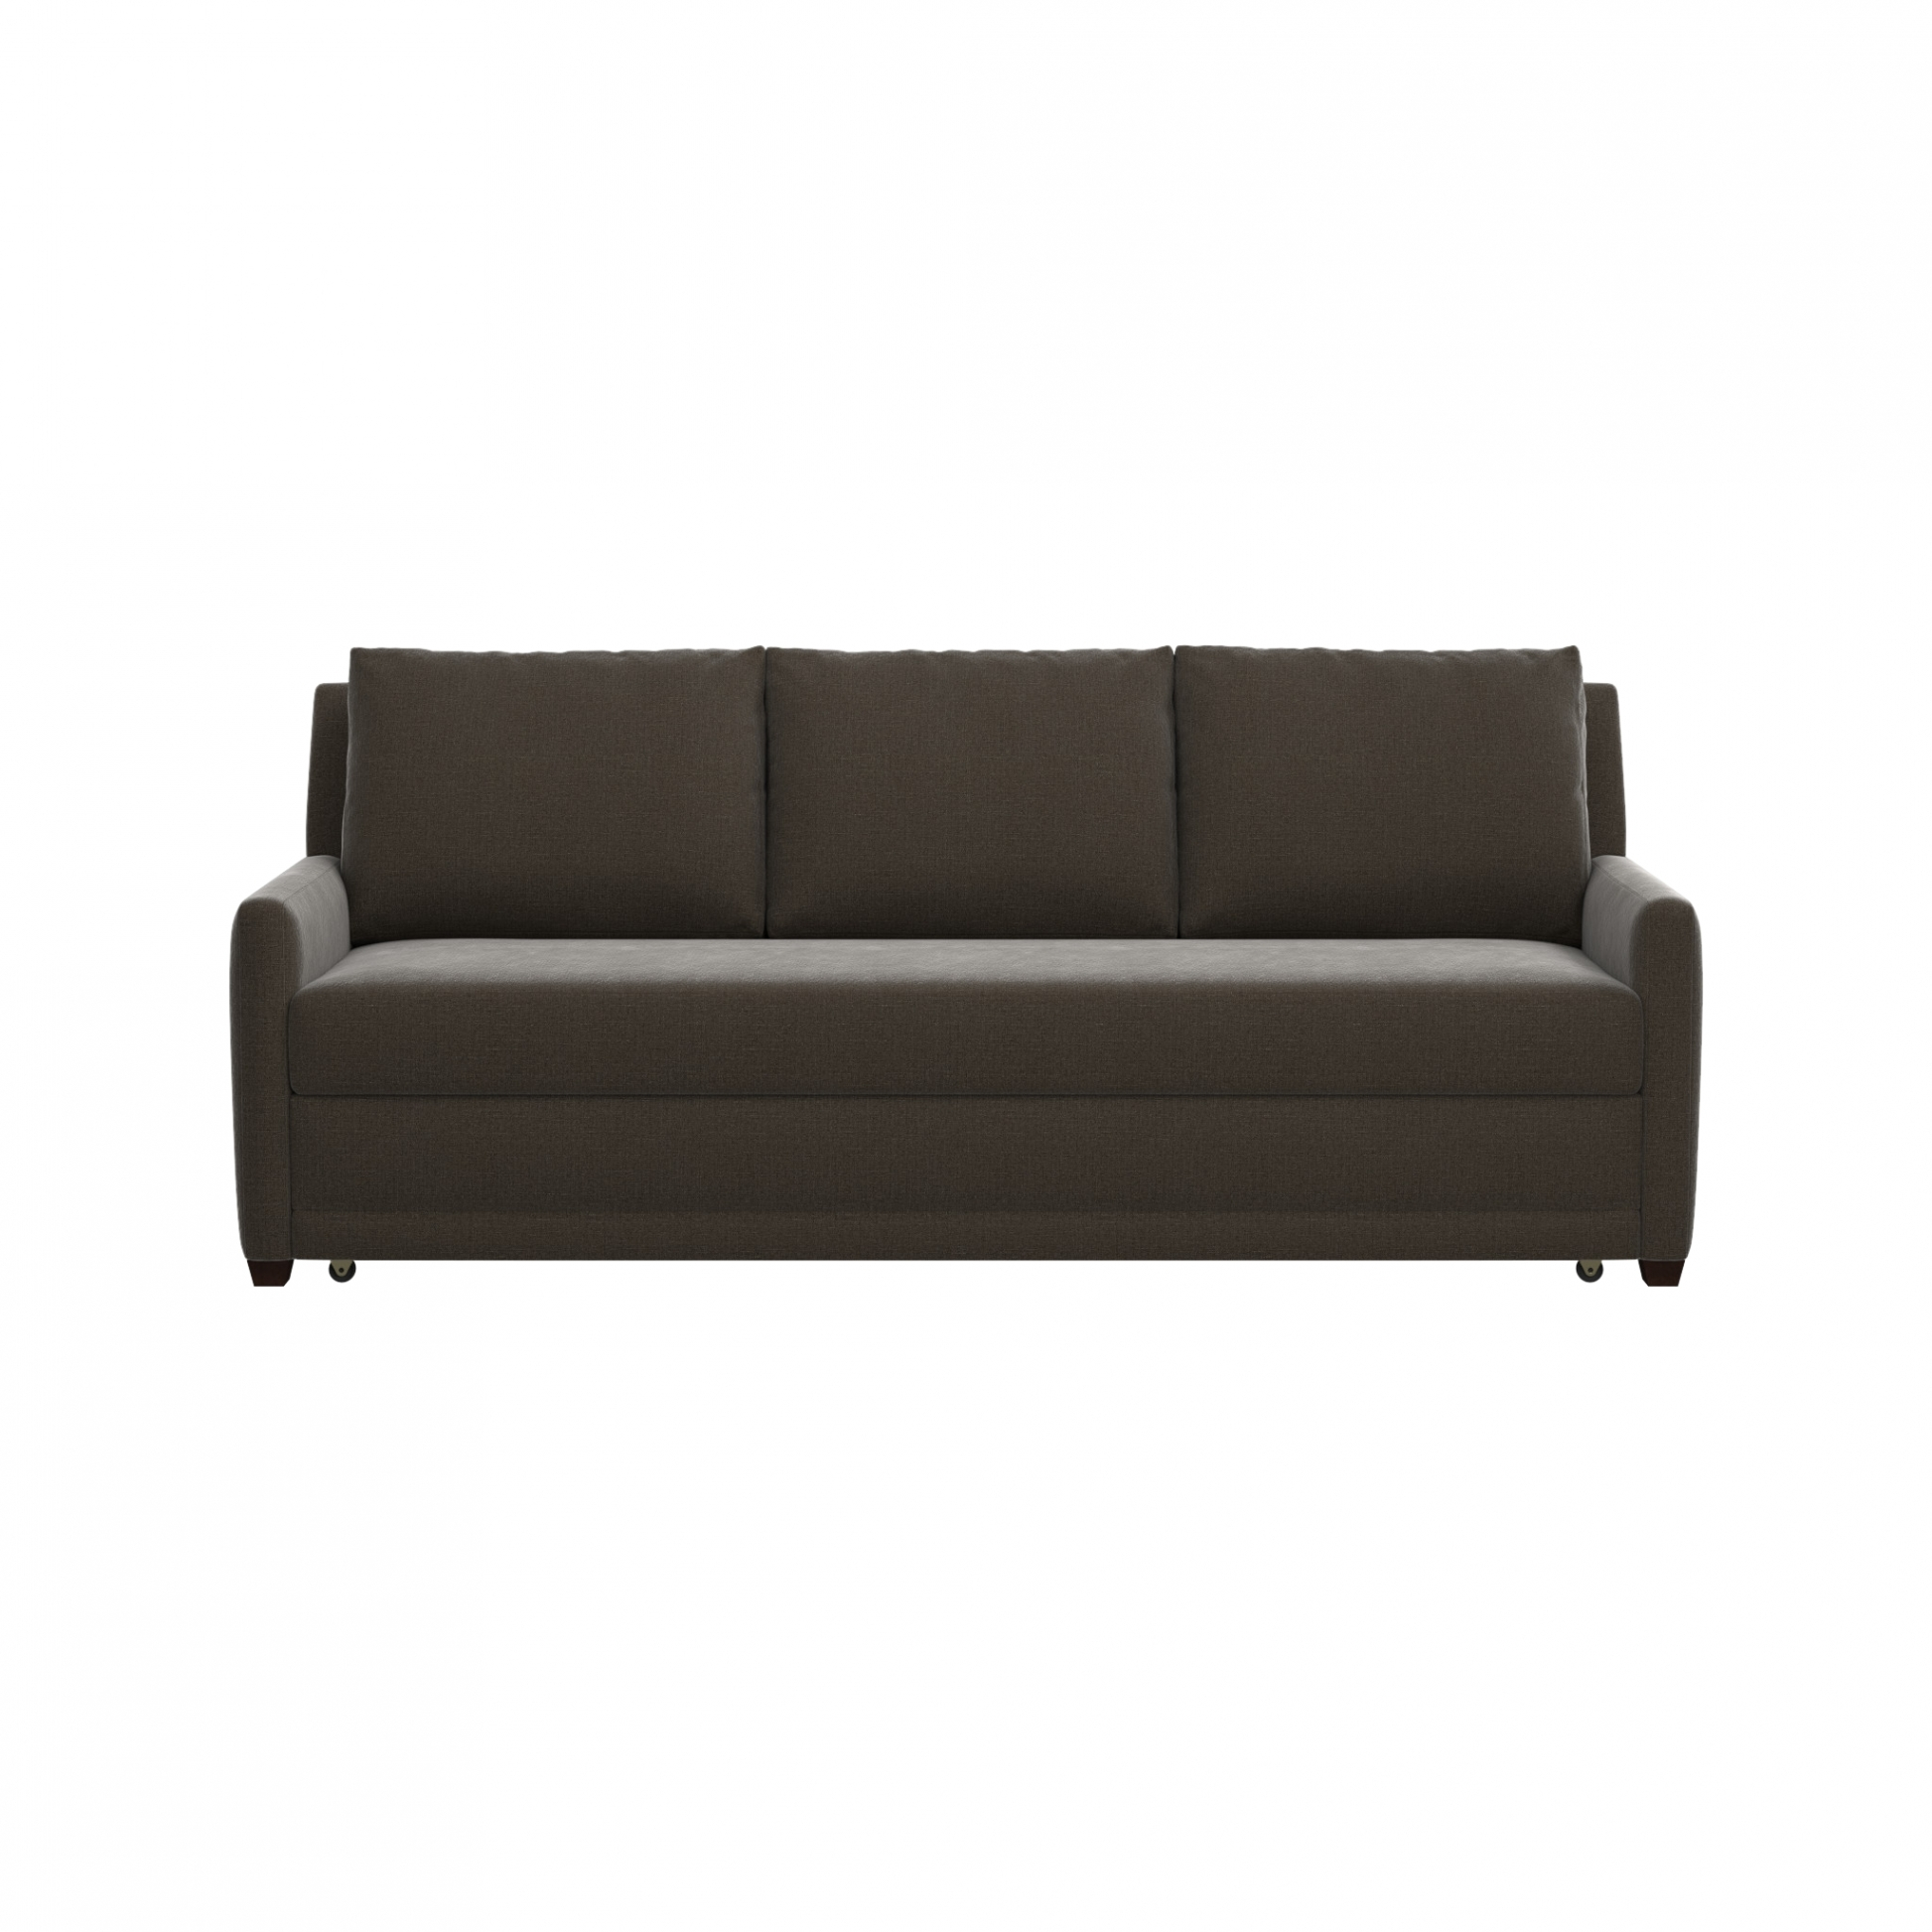 crate and barrel sleeper sofa innovation queen 20 collection of sofas ideas